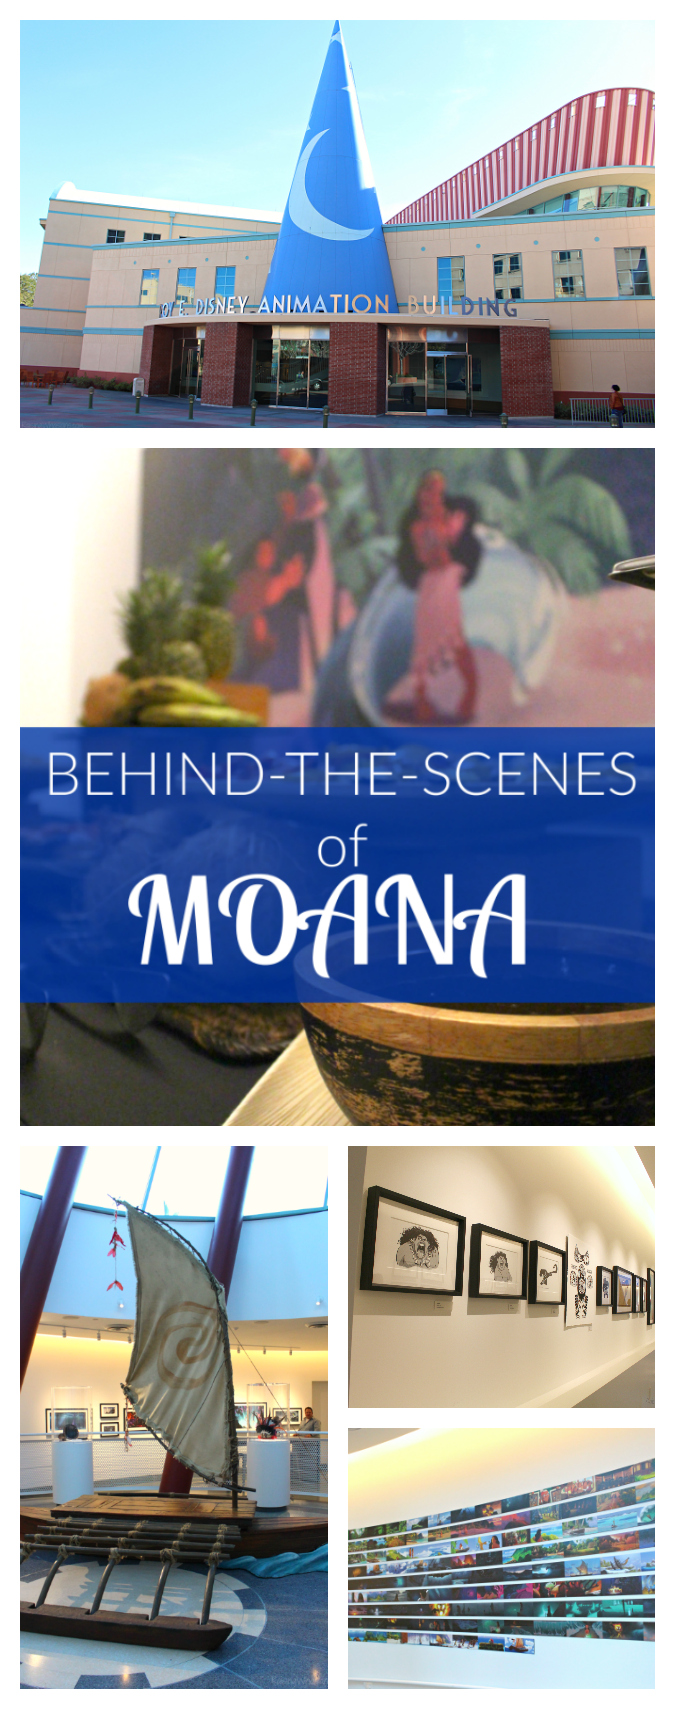 Behind-the-scenes of Moana pinterest